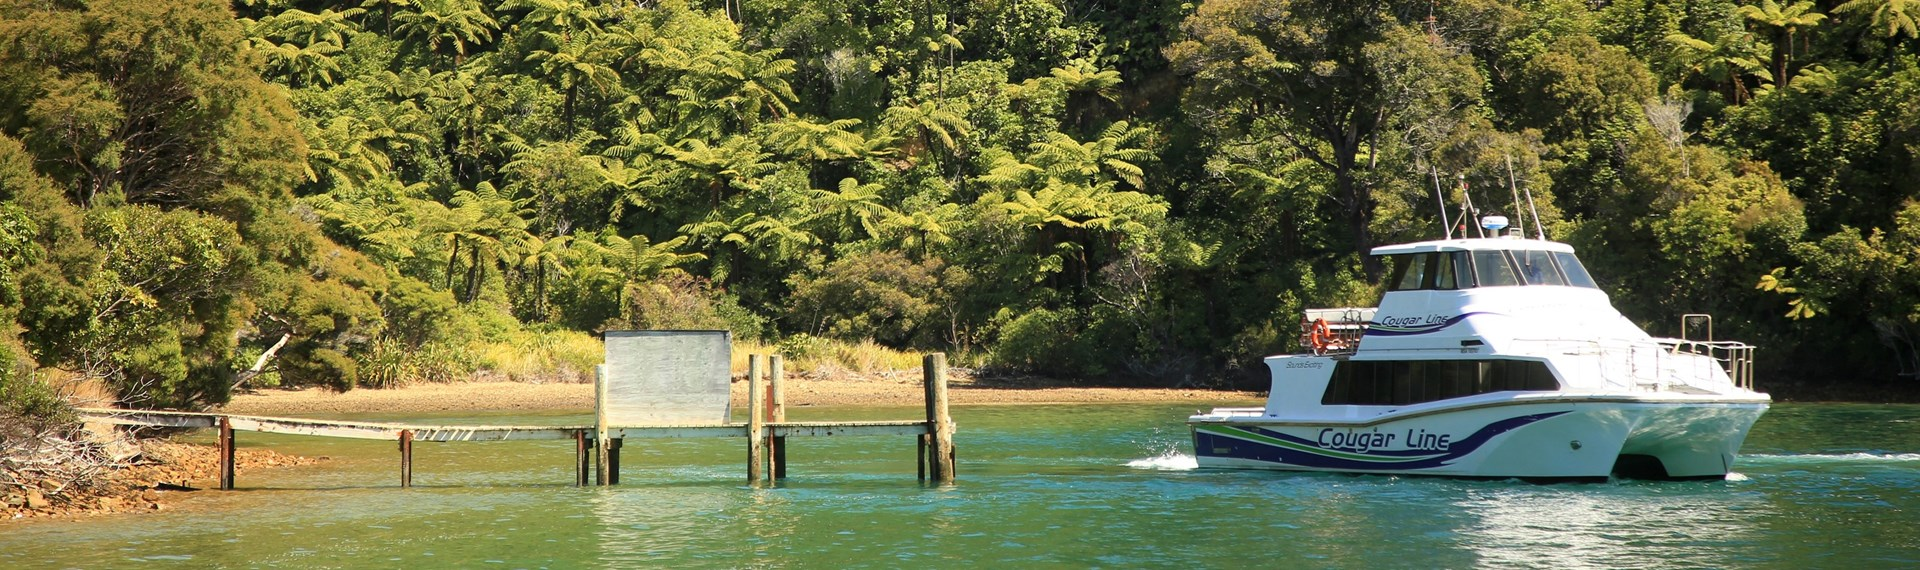 A Cougar Line boat at the Camp Bay jetty in a tranquil bay of calm green water, fern-filled native bush and a golden beach in the Marlborough Sounds, New Zealand